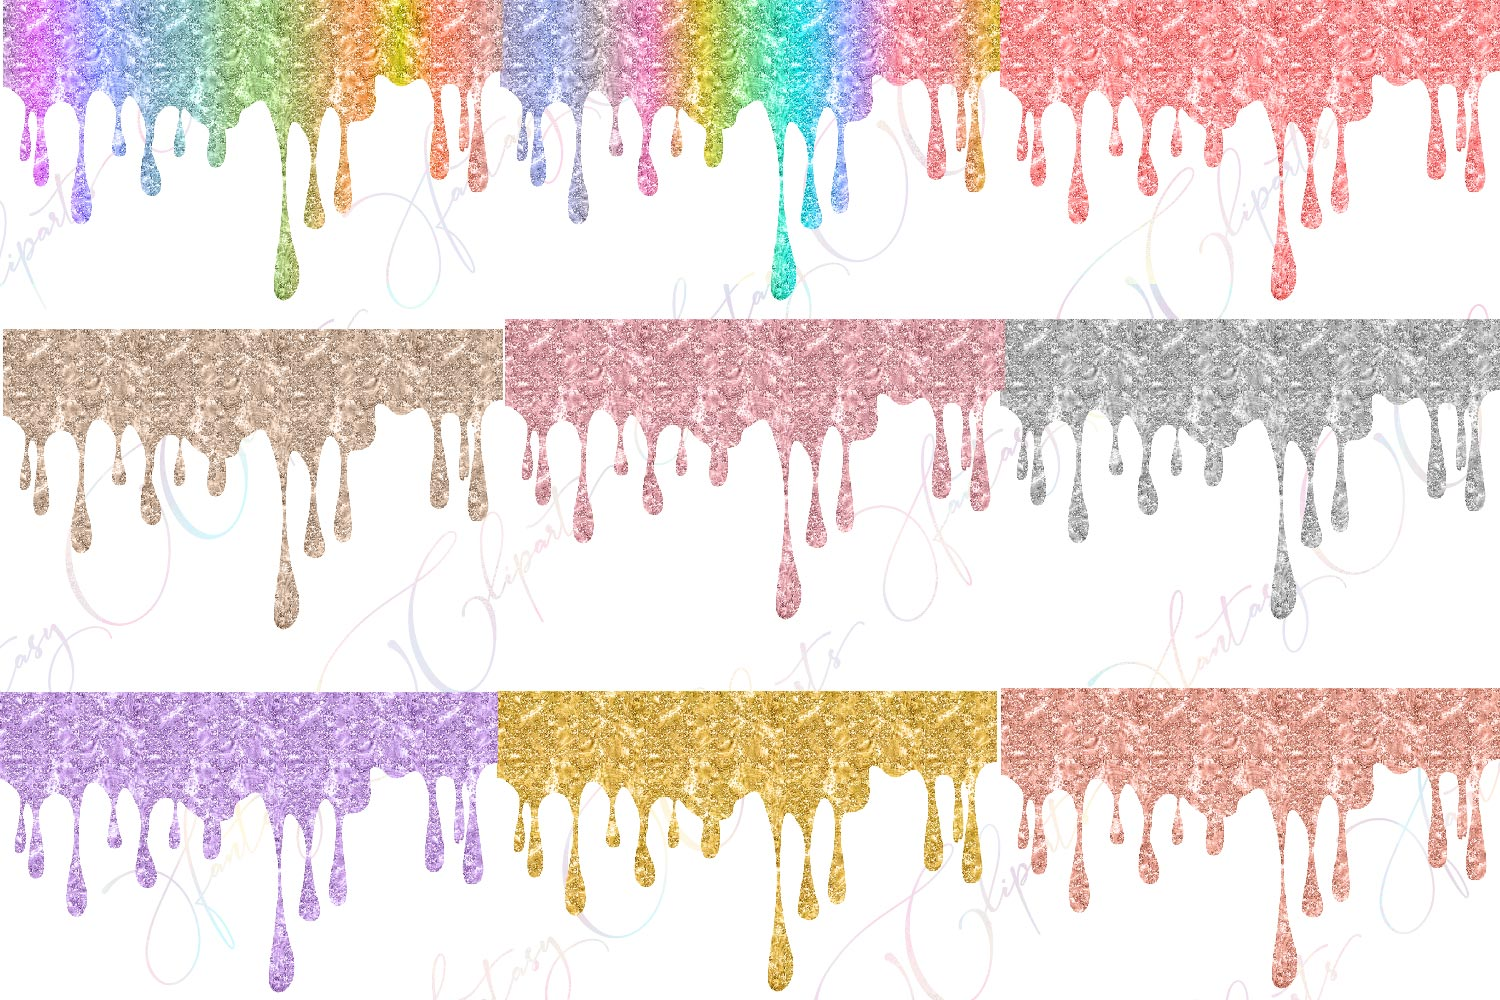 Glitter Drippings Clipart example image 2